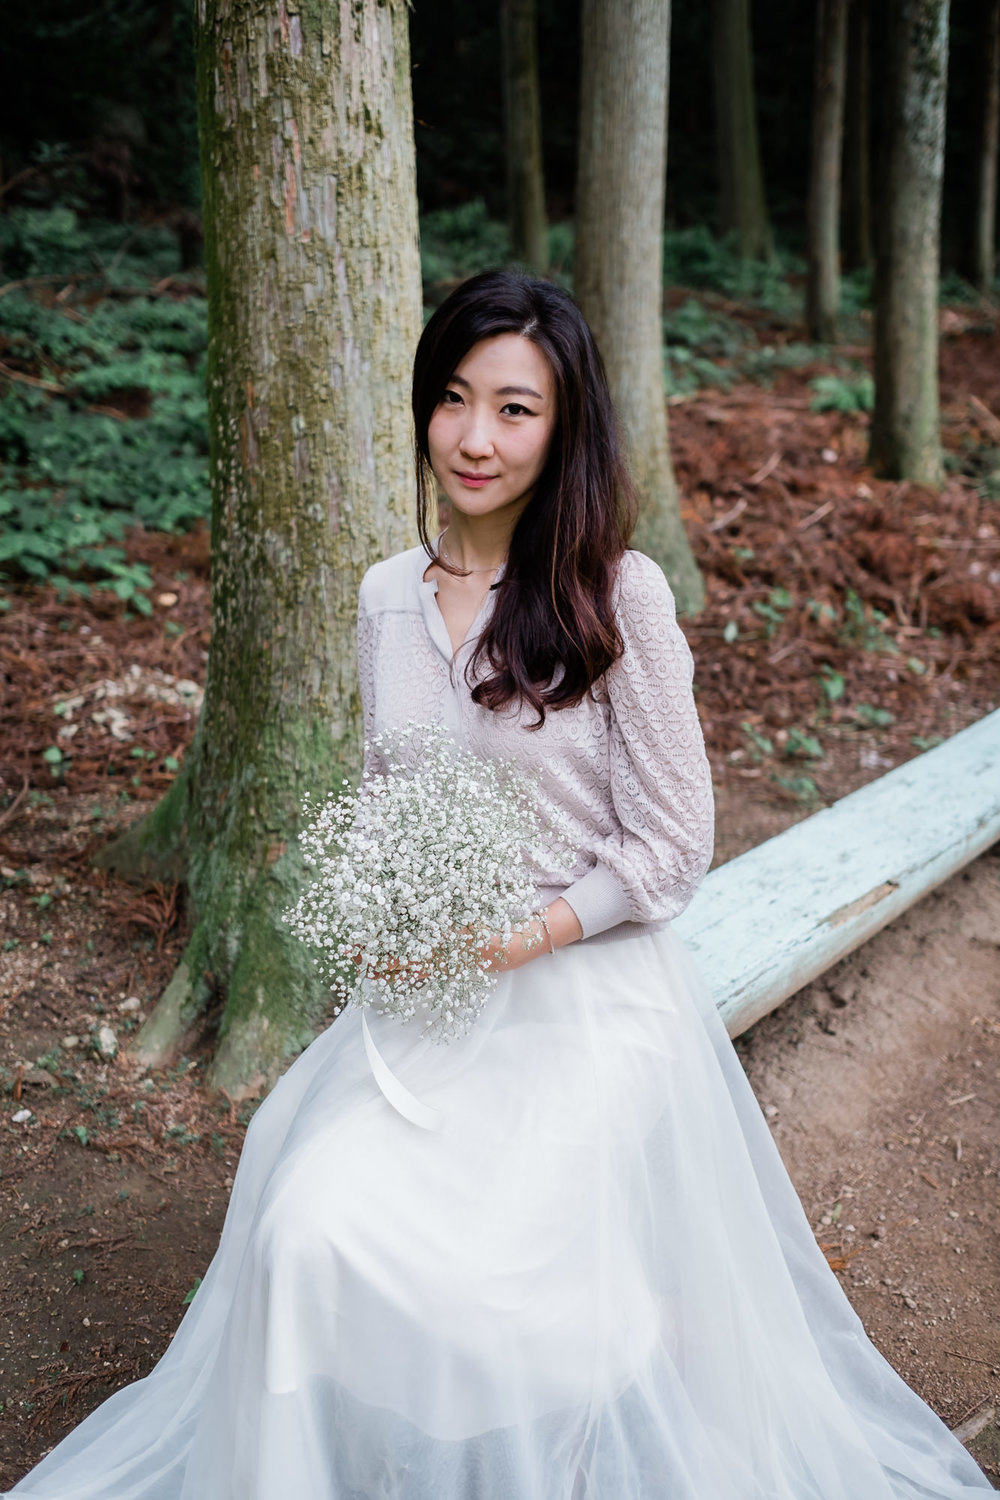 girl-flowers-nature-south-korea.jpg